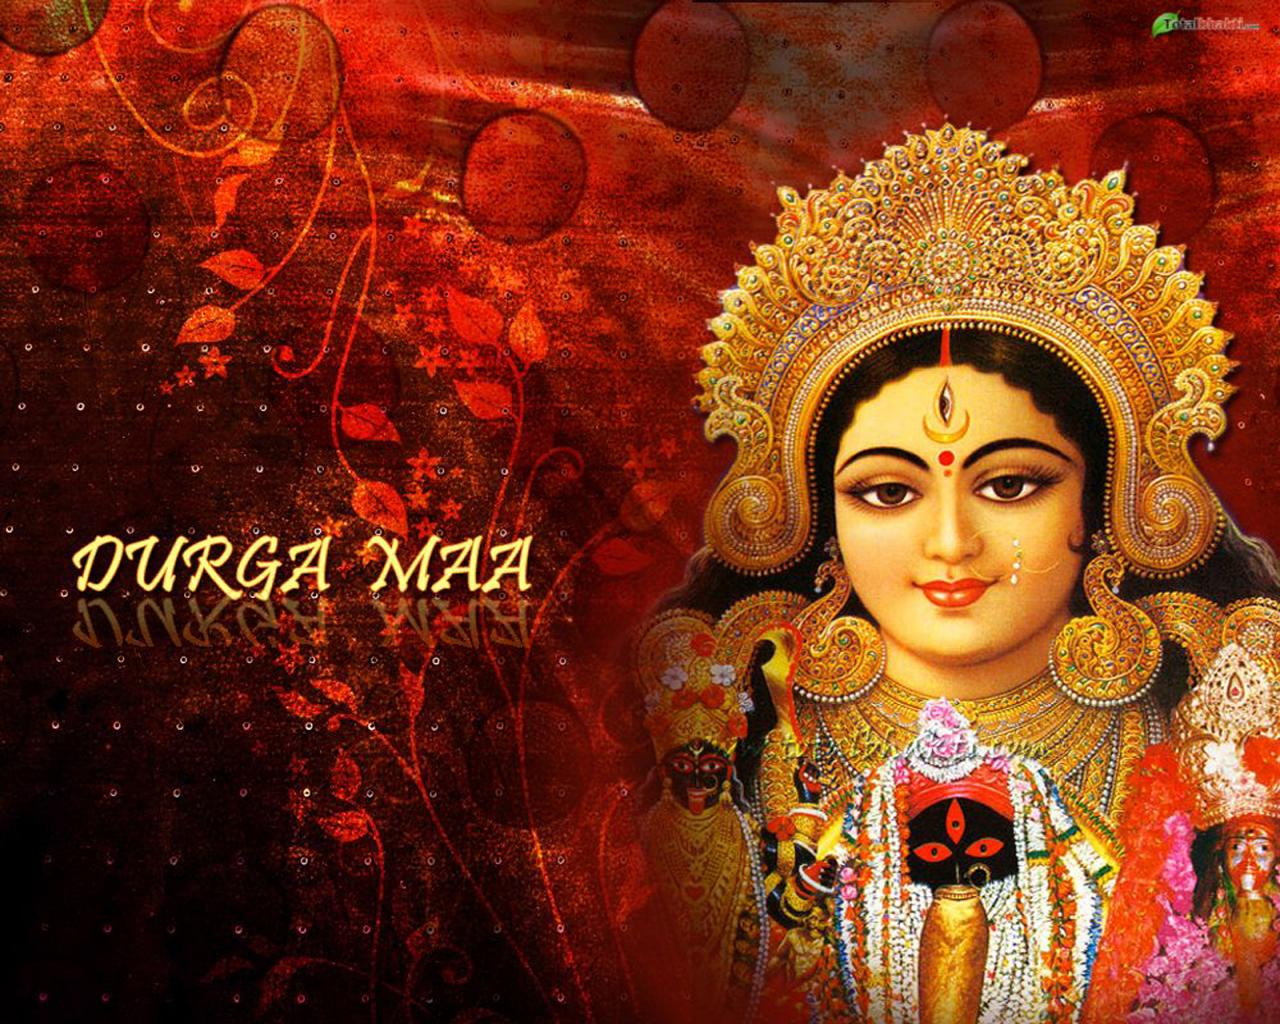 Hd wallpaper krishna - Maa Durga Hd Wallpaper Durga Maa Photo Images Krishna Wallpaper Ganesh Wallpaper